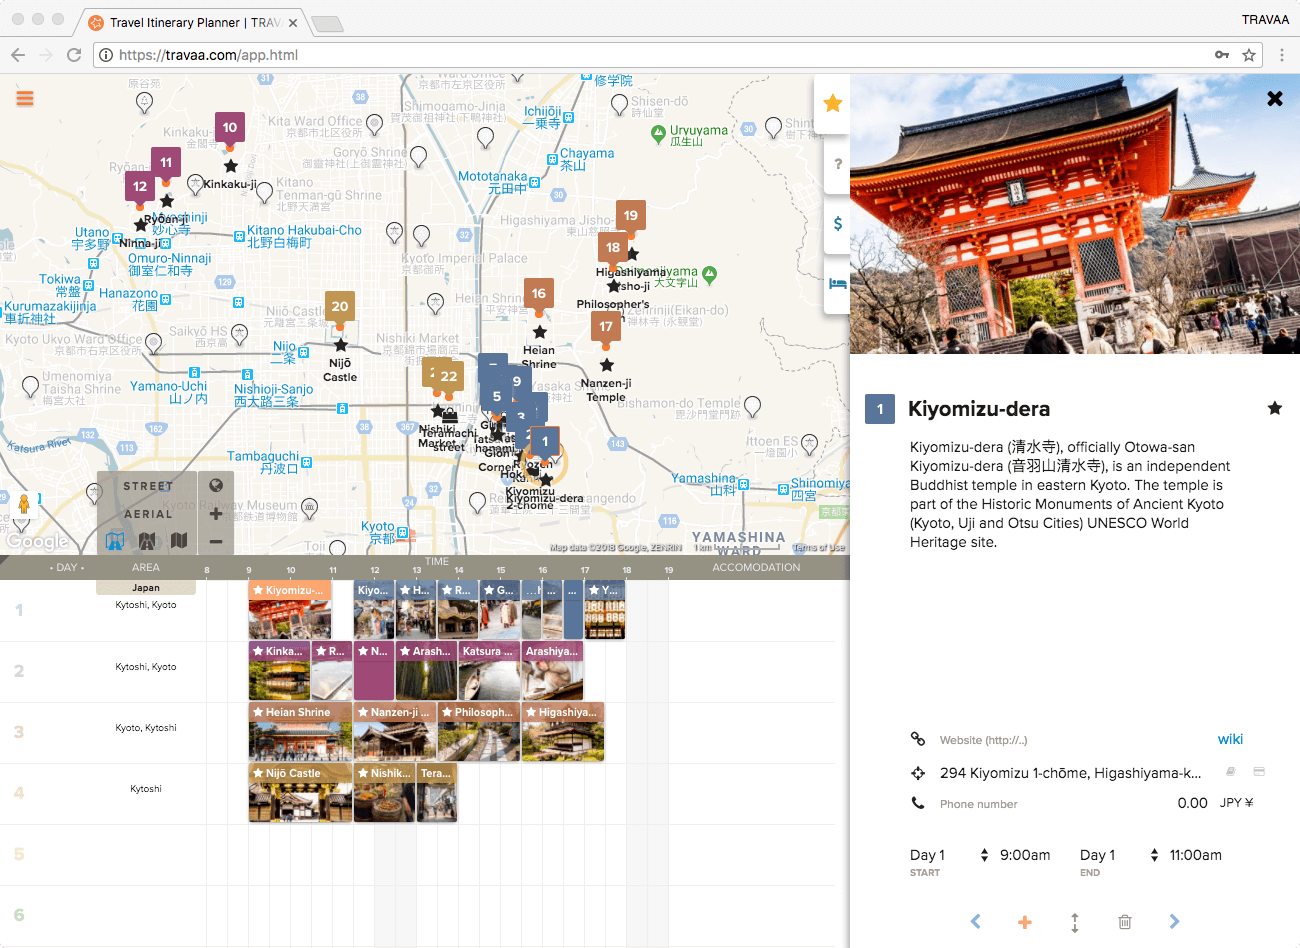 travel itinerary planner filled